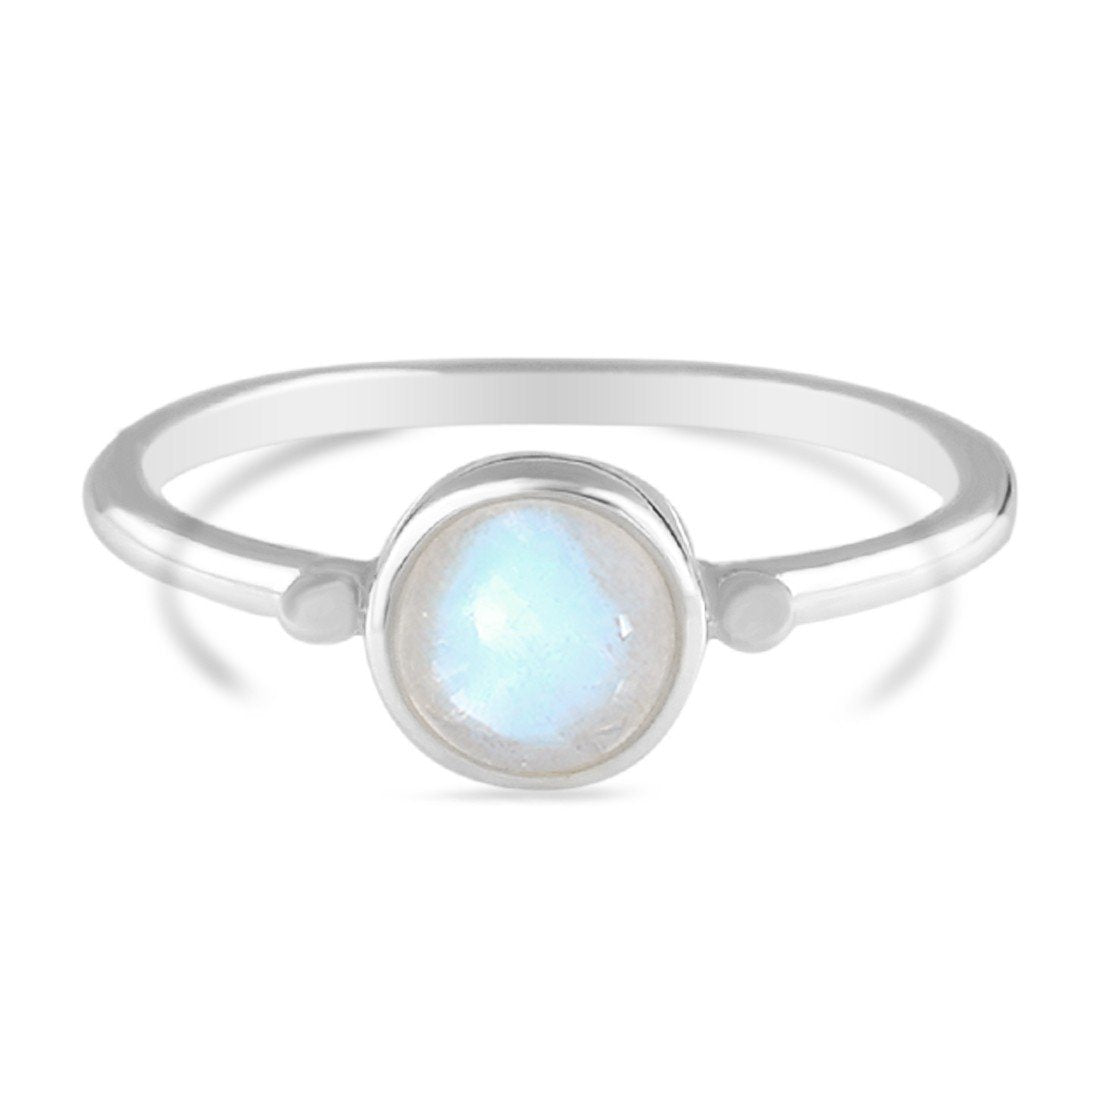 Moonstone Ring-Smooth Honor Moonstone Ring 925 SILVER & MOONSTONE